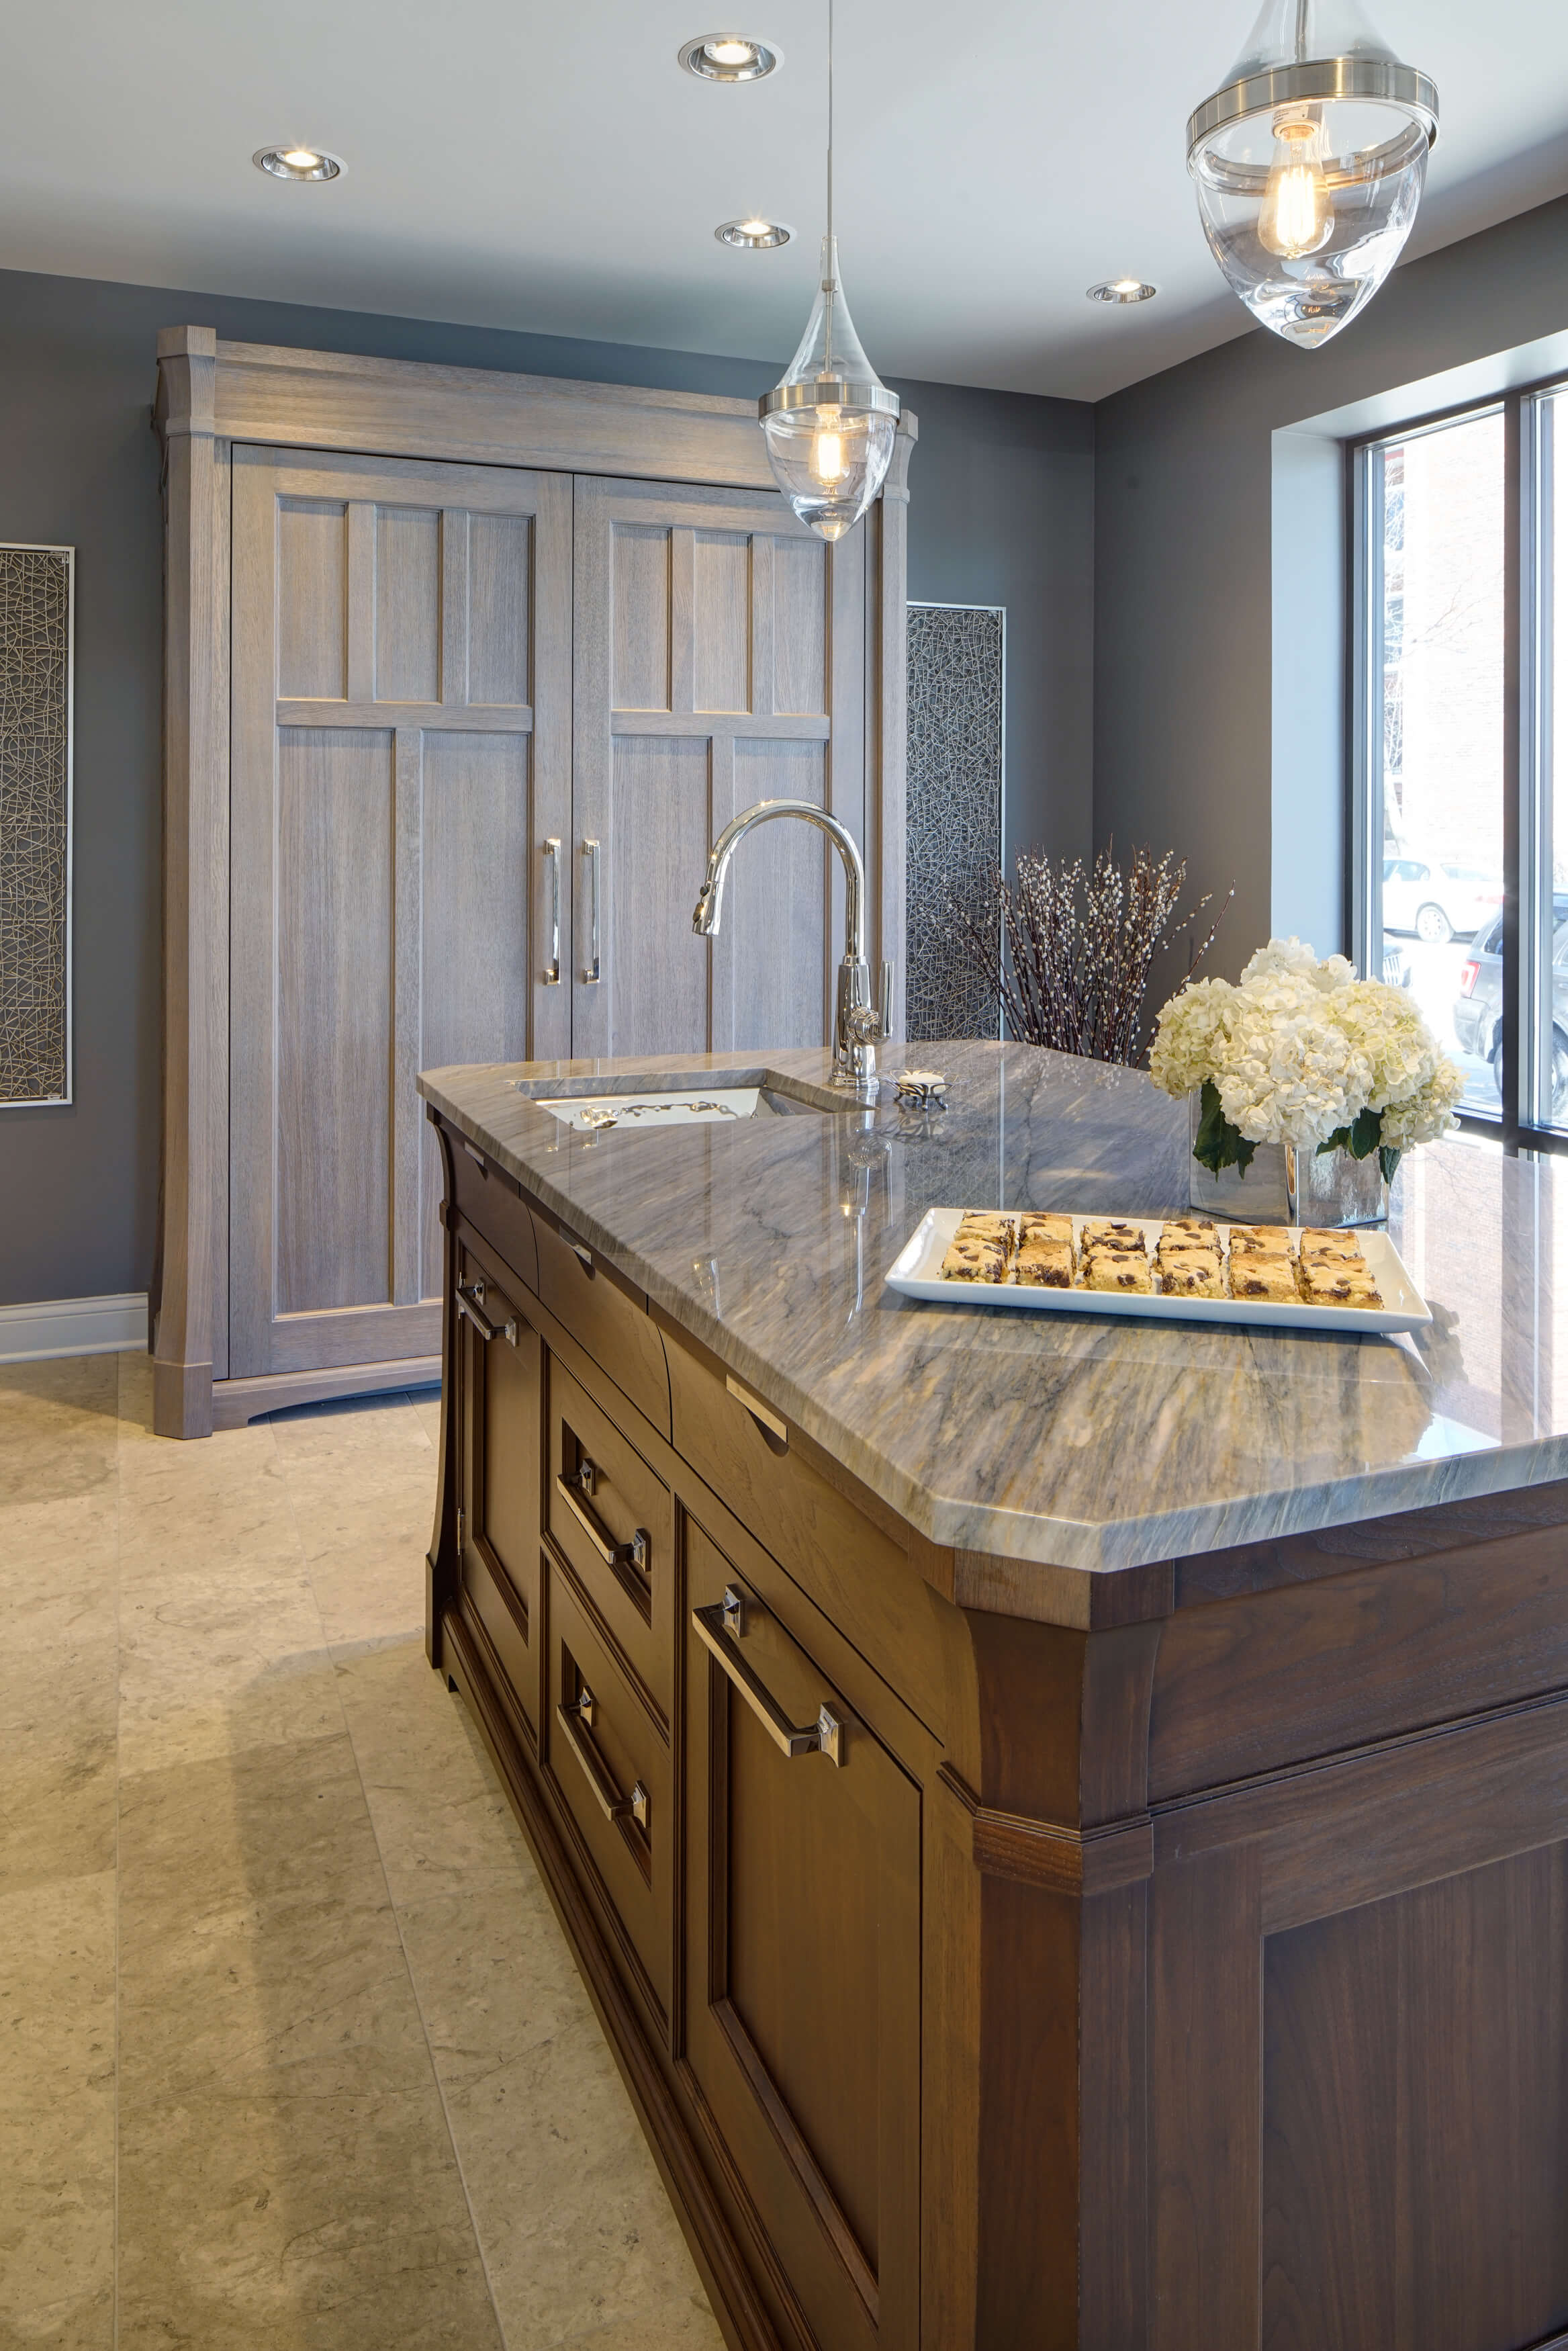 Delicieux Drury Design Unveils Rutt HandCrafted Cabinetry Kitchen